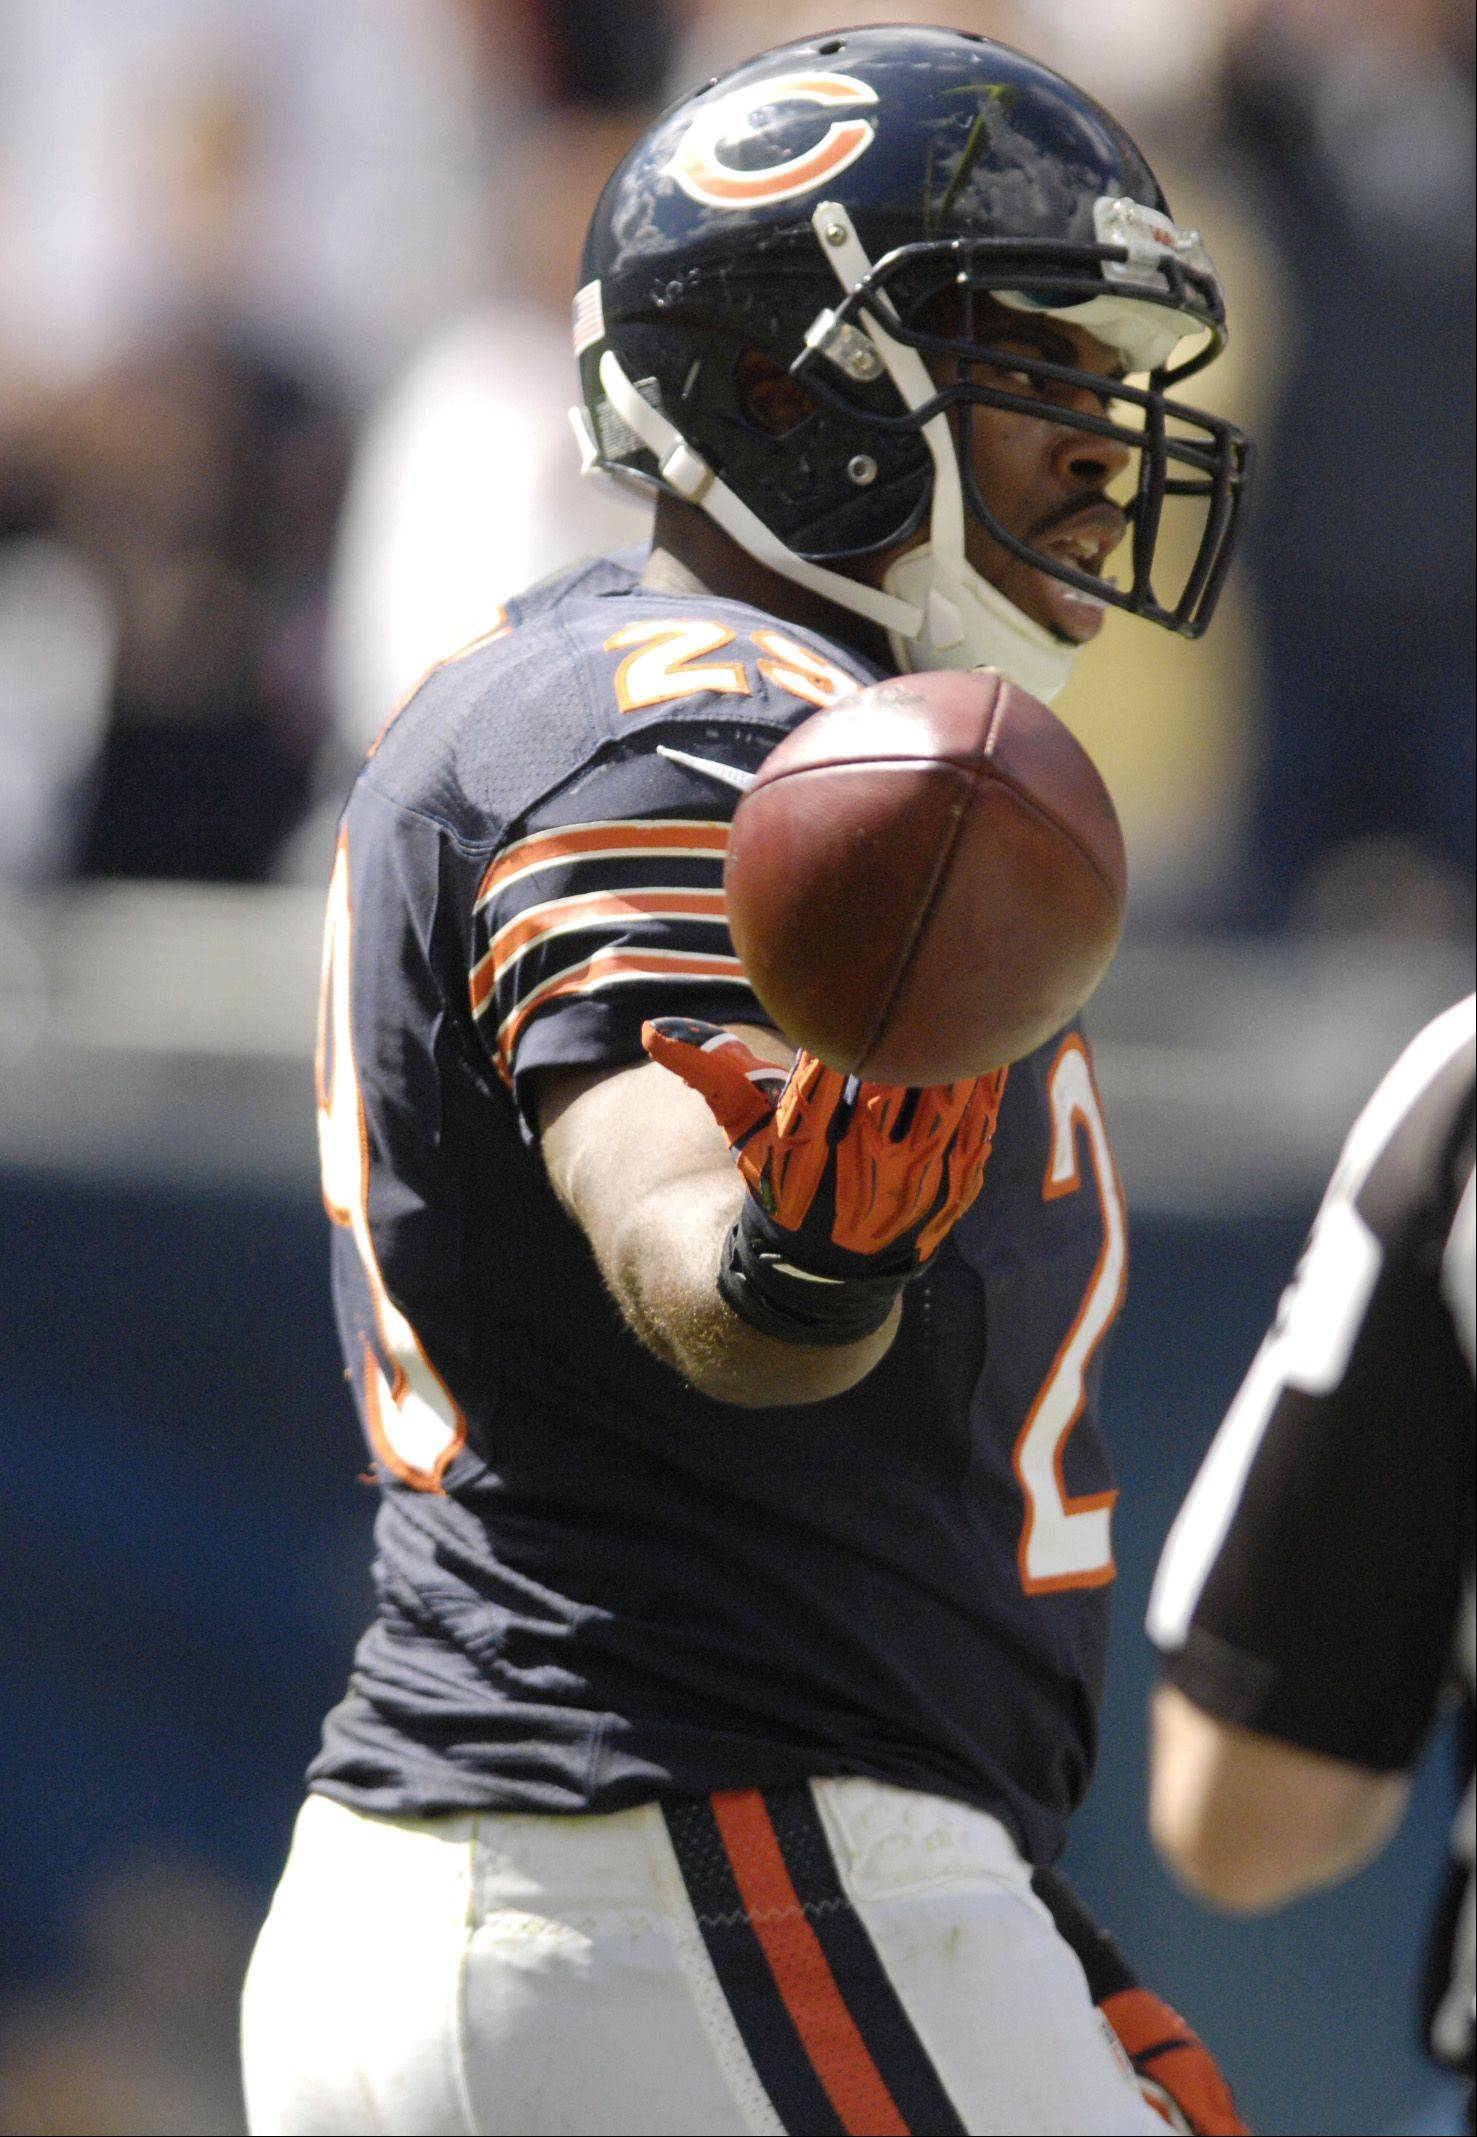 Chicago Bears running back Michael Bush scores a touchdown against the St. Louis Rams at Soldier Field in Chicago.